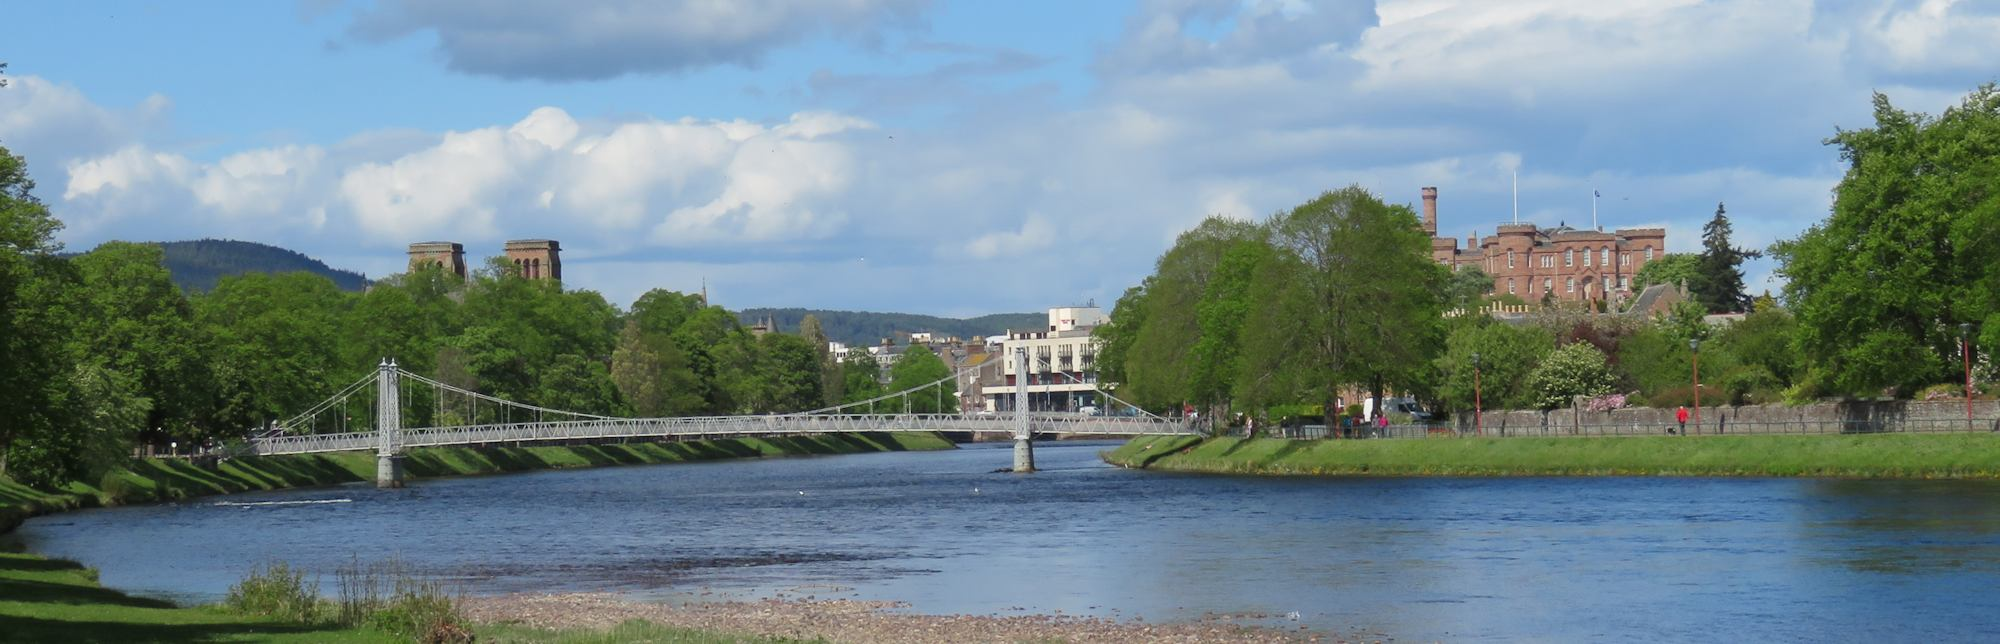 River Ness, Inverness Scotland